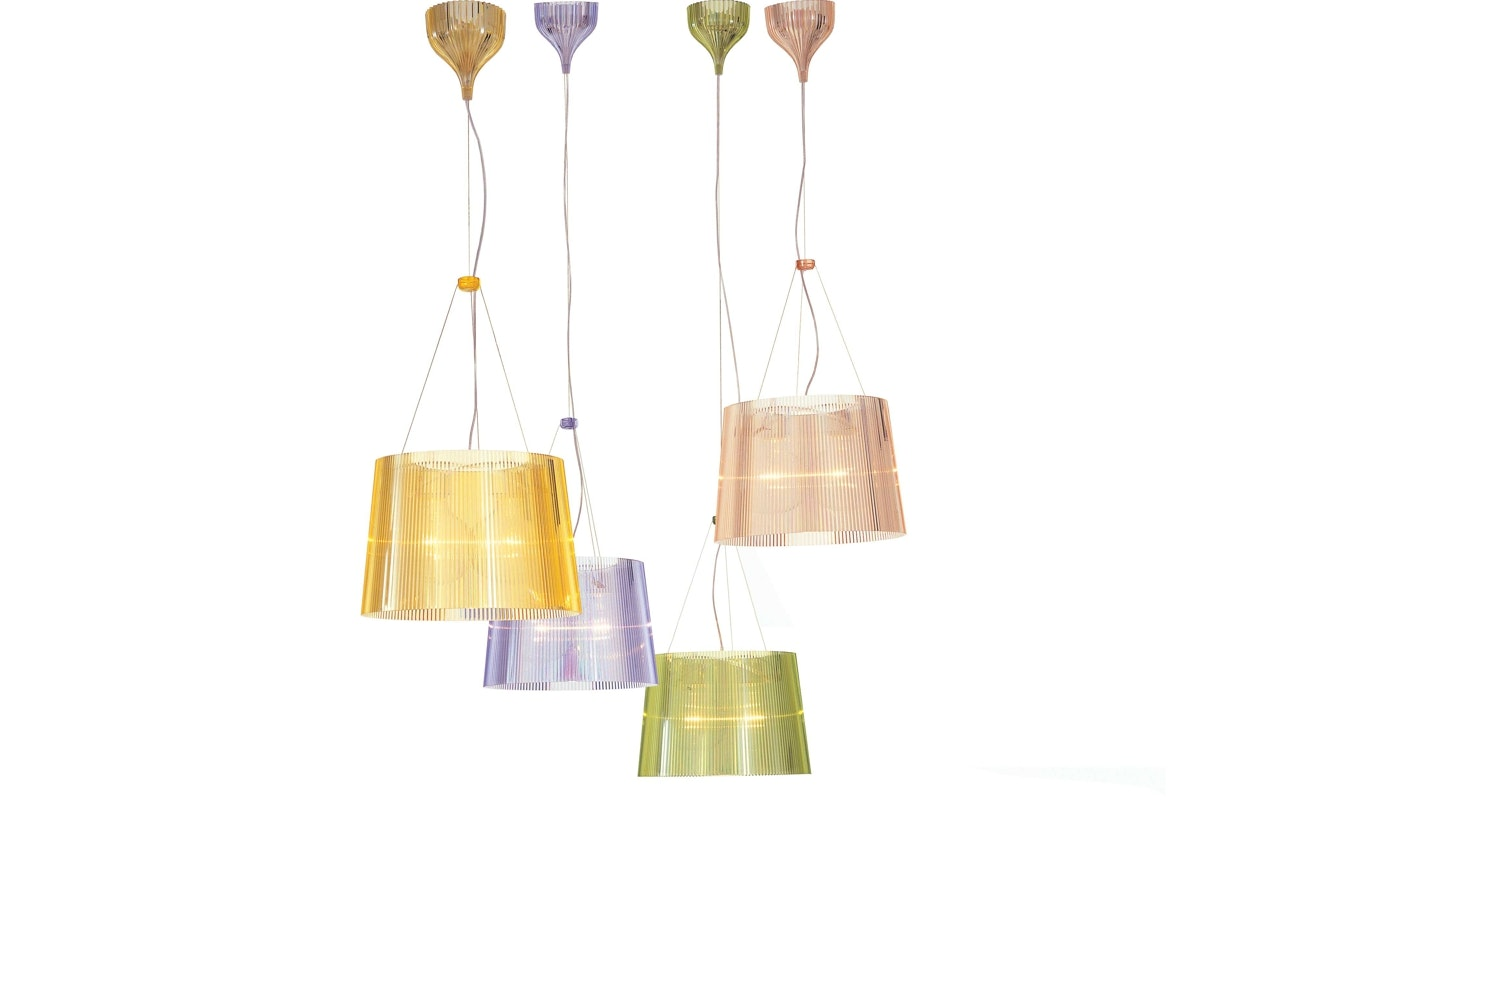 Ge Suspension Lamp by Ferruccio Laviani for Kartell